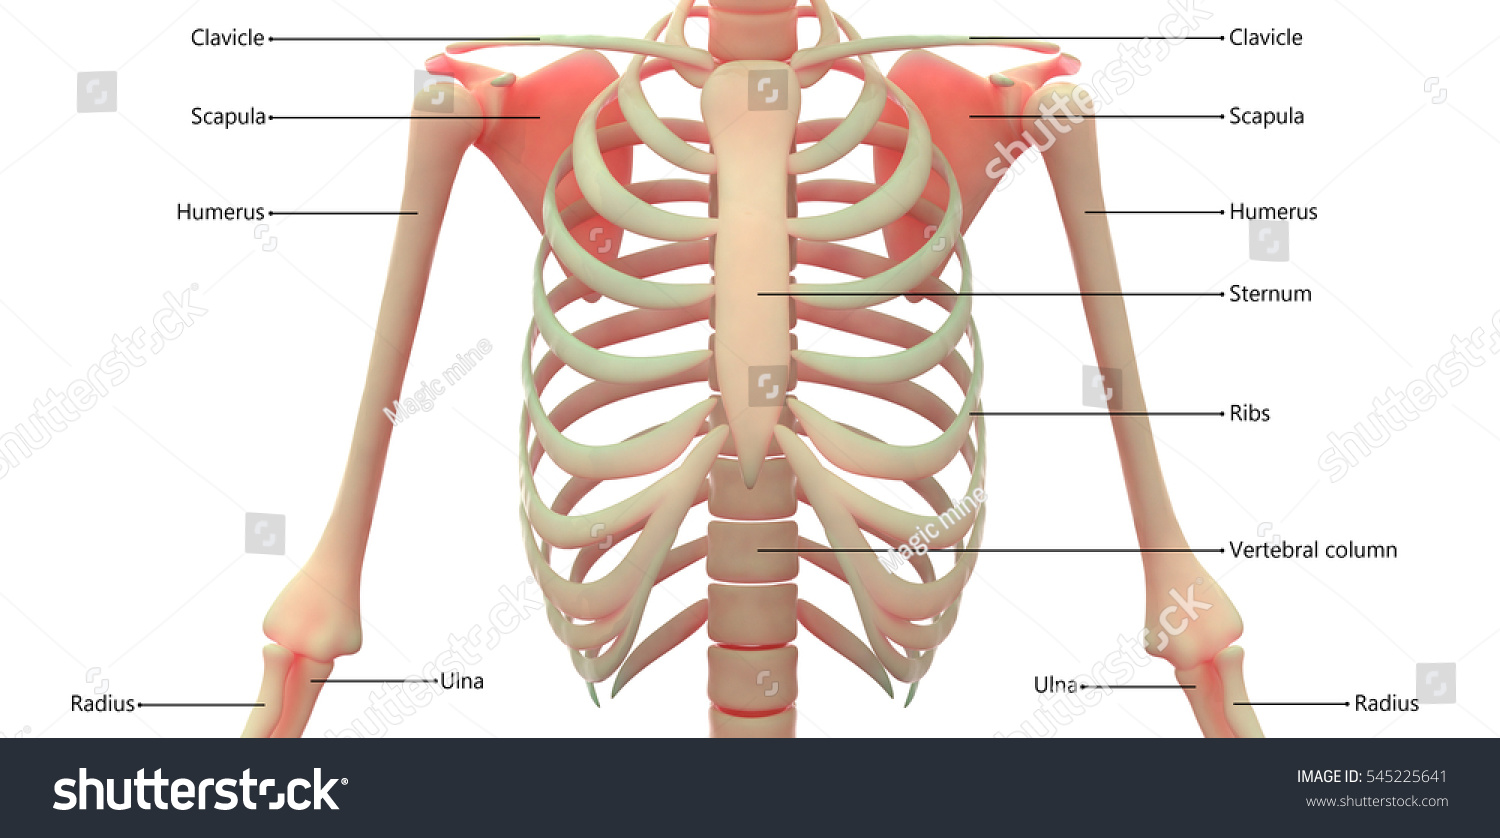 Royalty Free Stock Illustration of Human Skeleton Anatomy Ribs 3 D ...